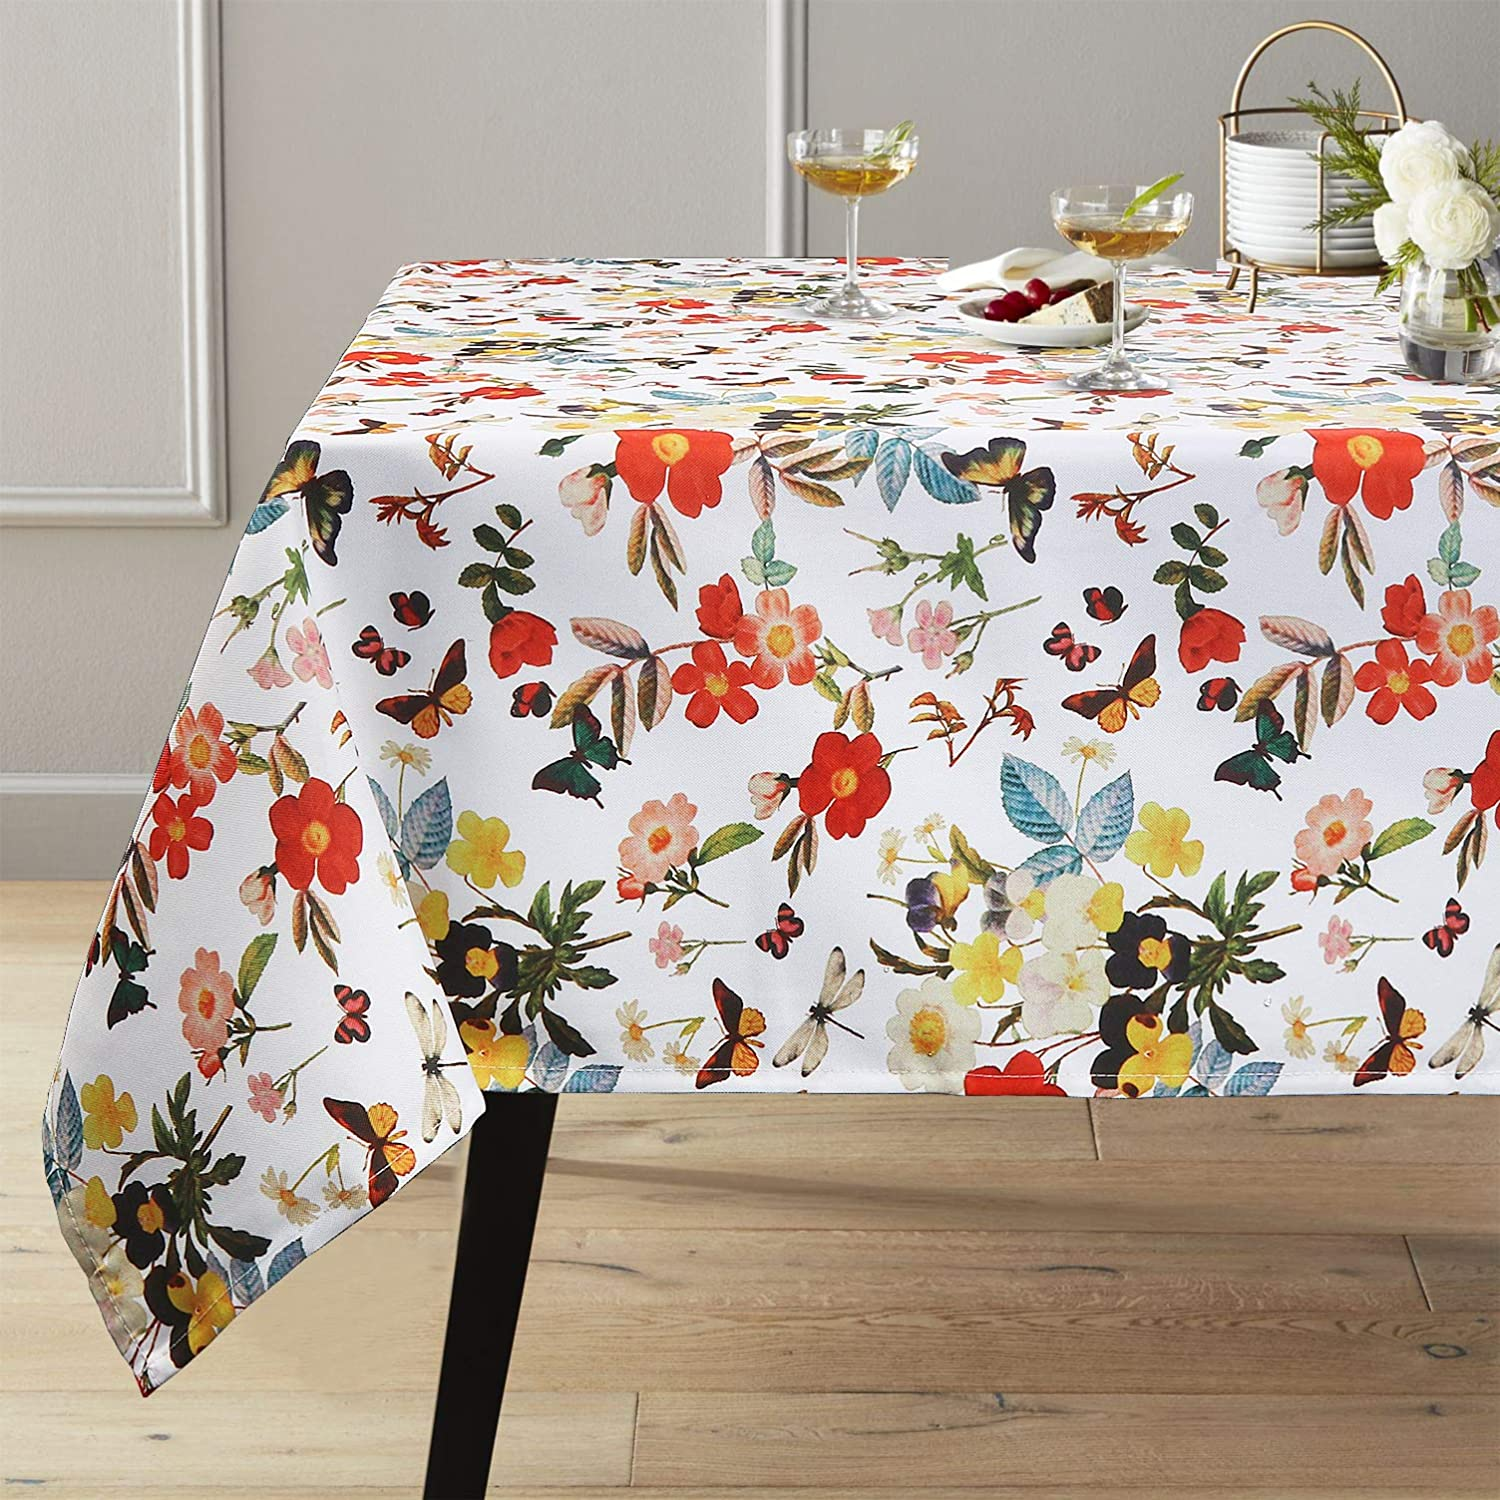 ColorBird Spring Bloom Tablecloth with Botanical Print - Water Resistant Spillproof Polyester Fabric Table Cover for Kitchen Dinning Tabletop Decoration, Rectangle/Oblong, 60 x 102 Inch